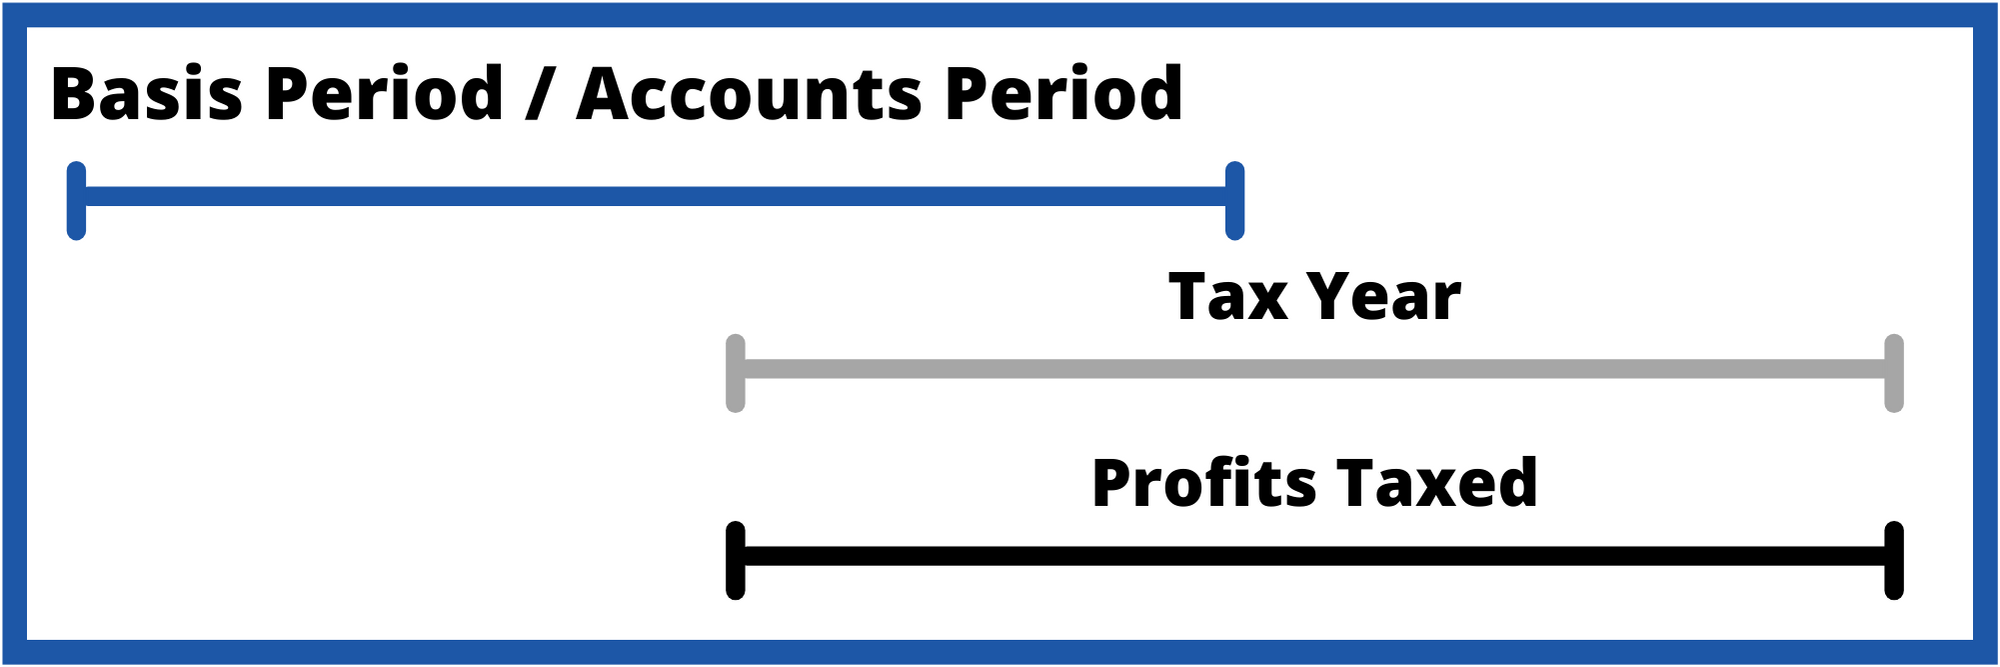 Timeline showing that the Tax period and profits taxed line up to be taxed in the following tax year.